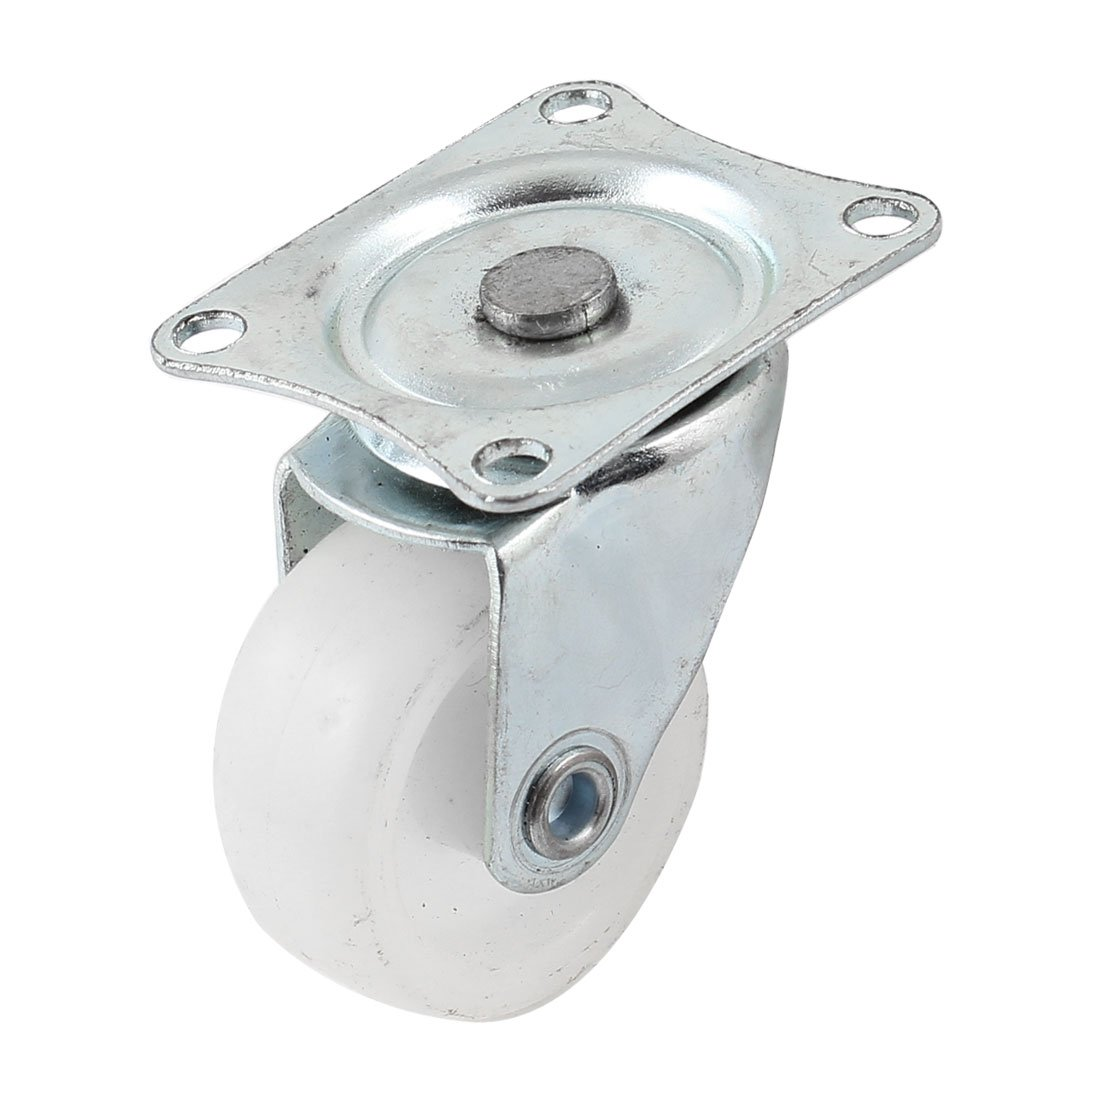 Uxcell a14030500ux0212 Fixed Metal Mounted Plate Rubber Ball Swivel Type Caster 1.2 Dia Wheel